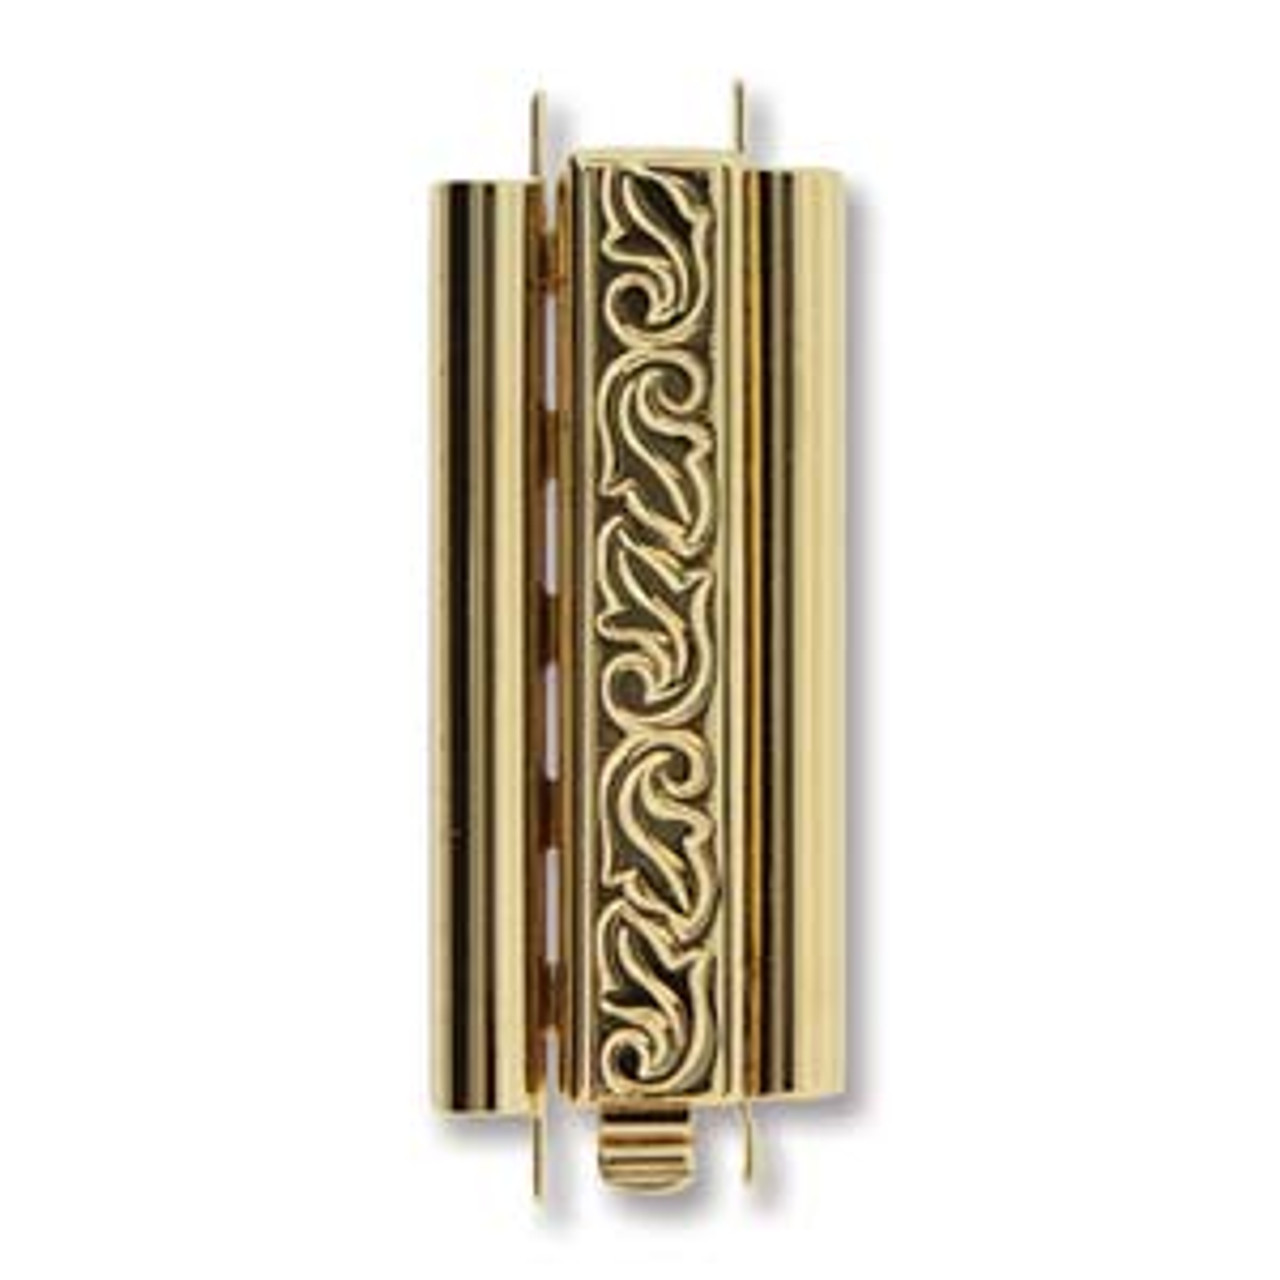 10x29mm Beadslide Swirl Brigh Gold Plated (1 Clasp)